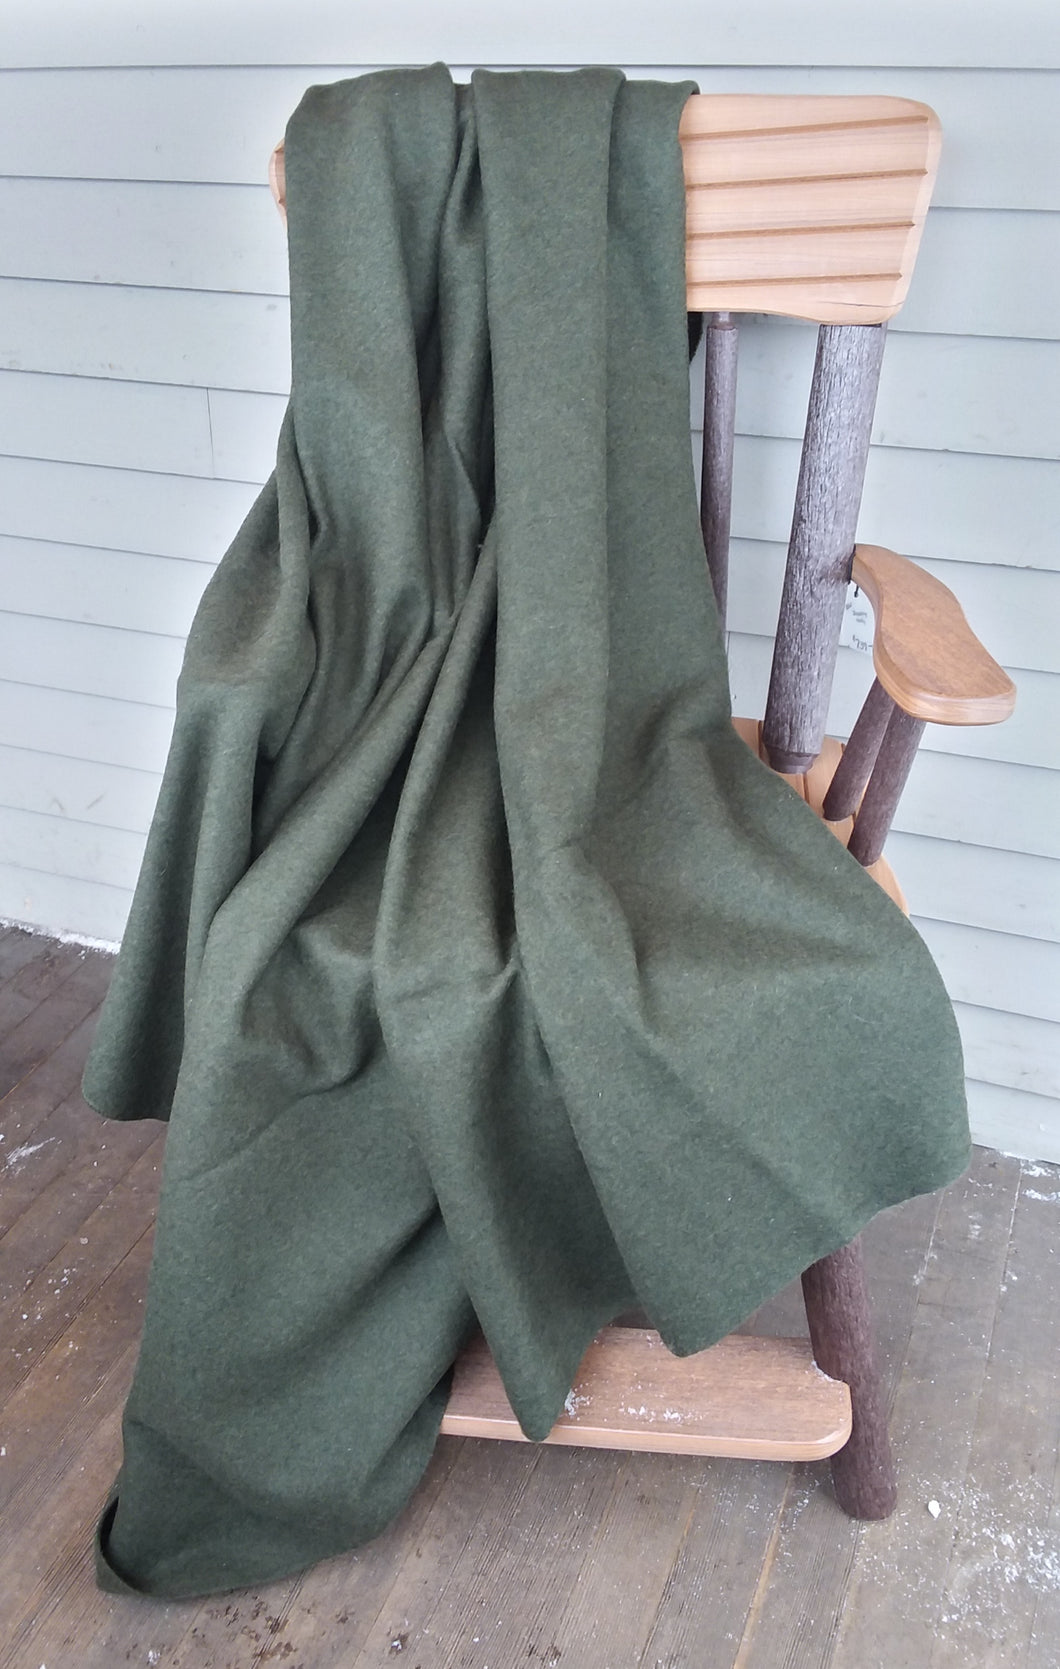 Wool Blanket - Olive Green